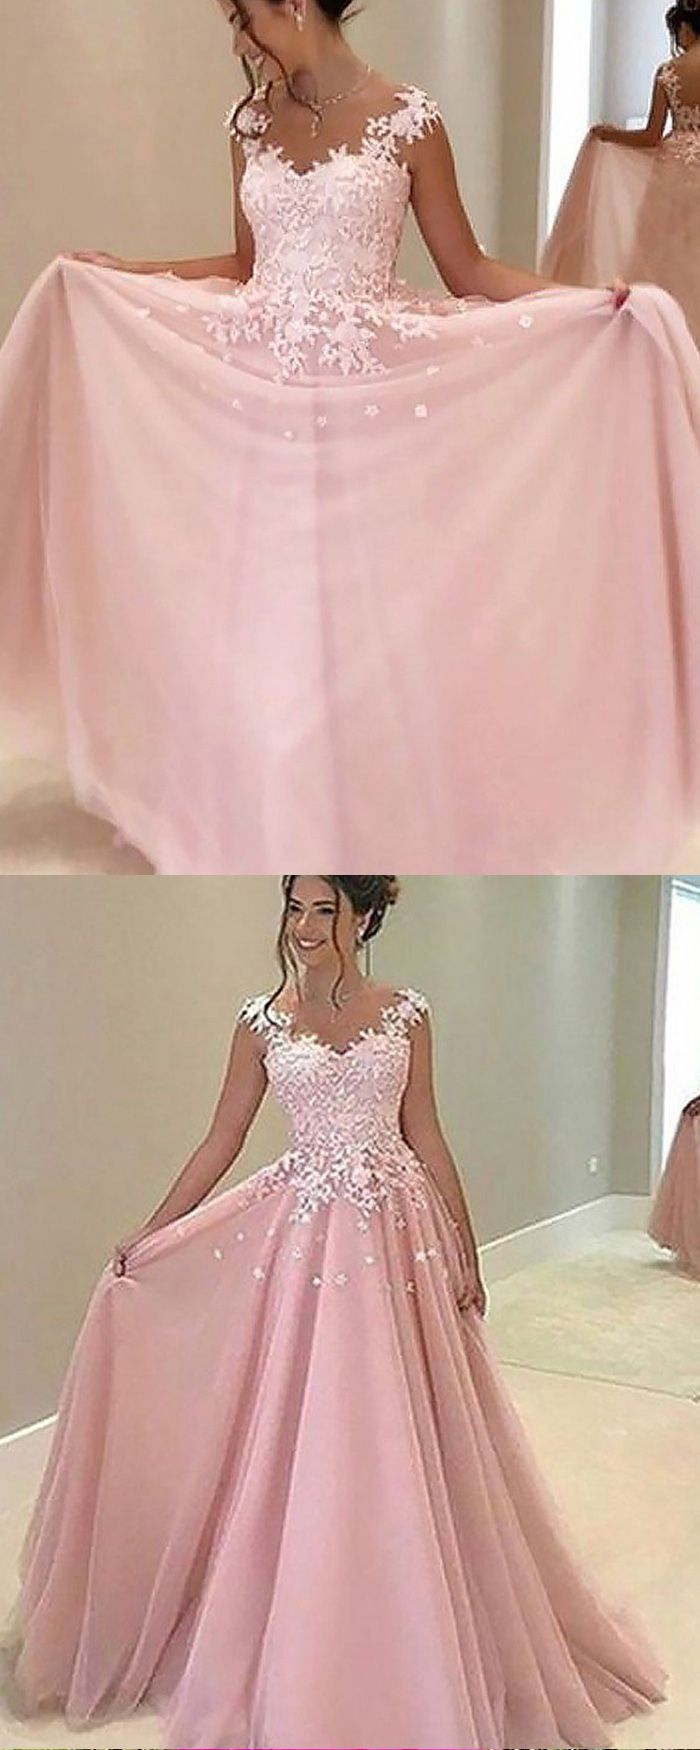 Sheer neck appliqued pink chiffon long prom dress pm in